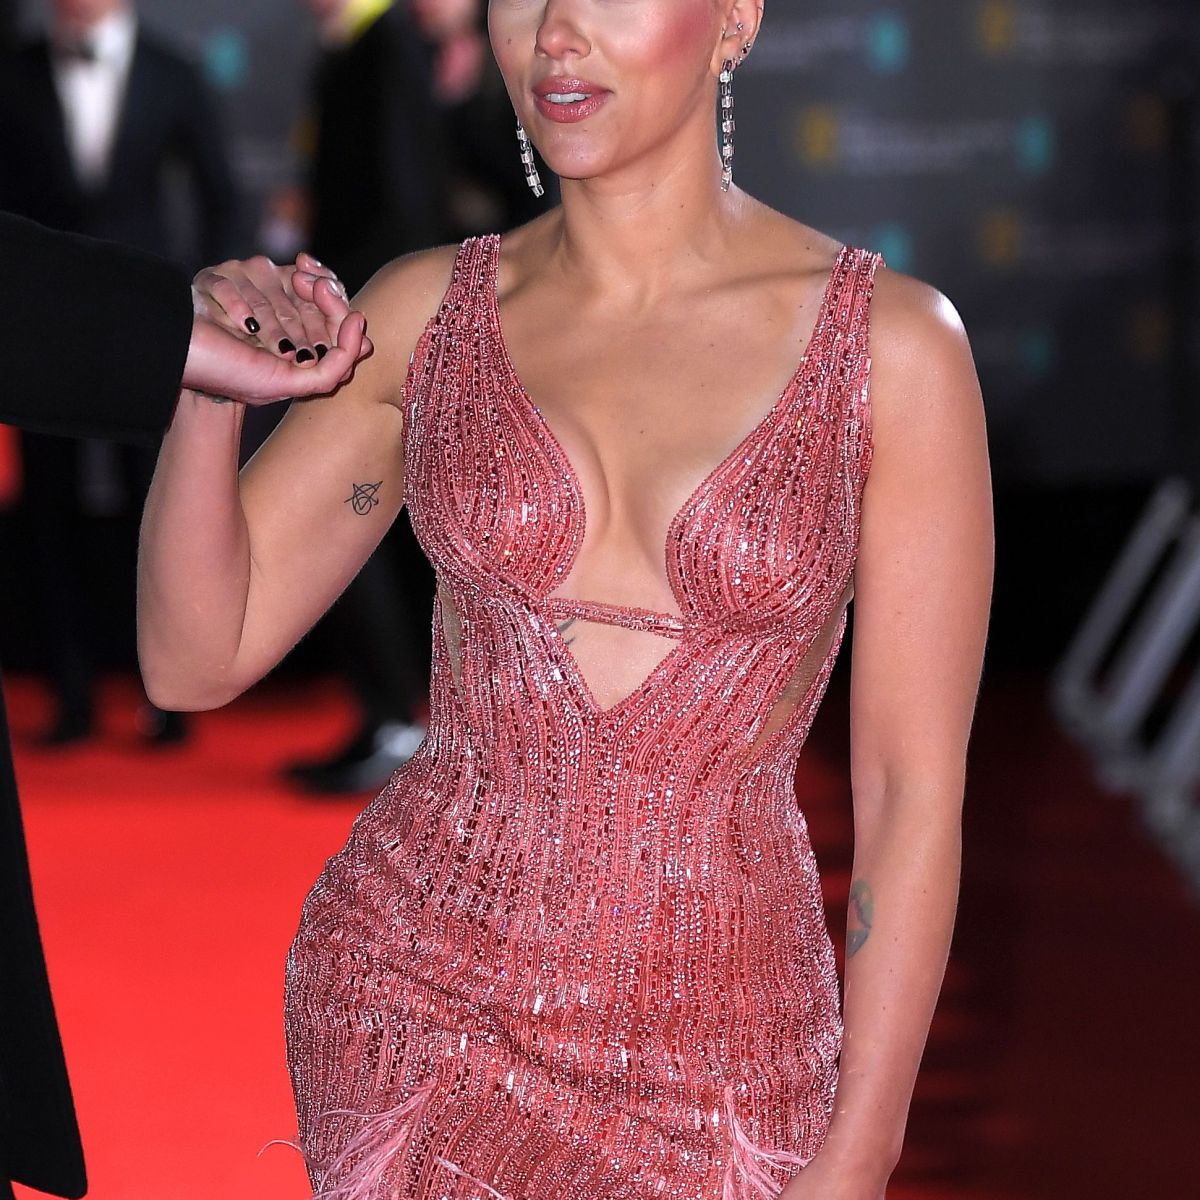 Scarlett Johansson's Tattoos Photos and What They Mean